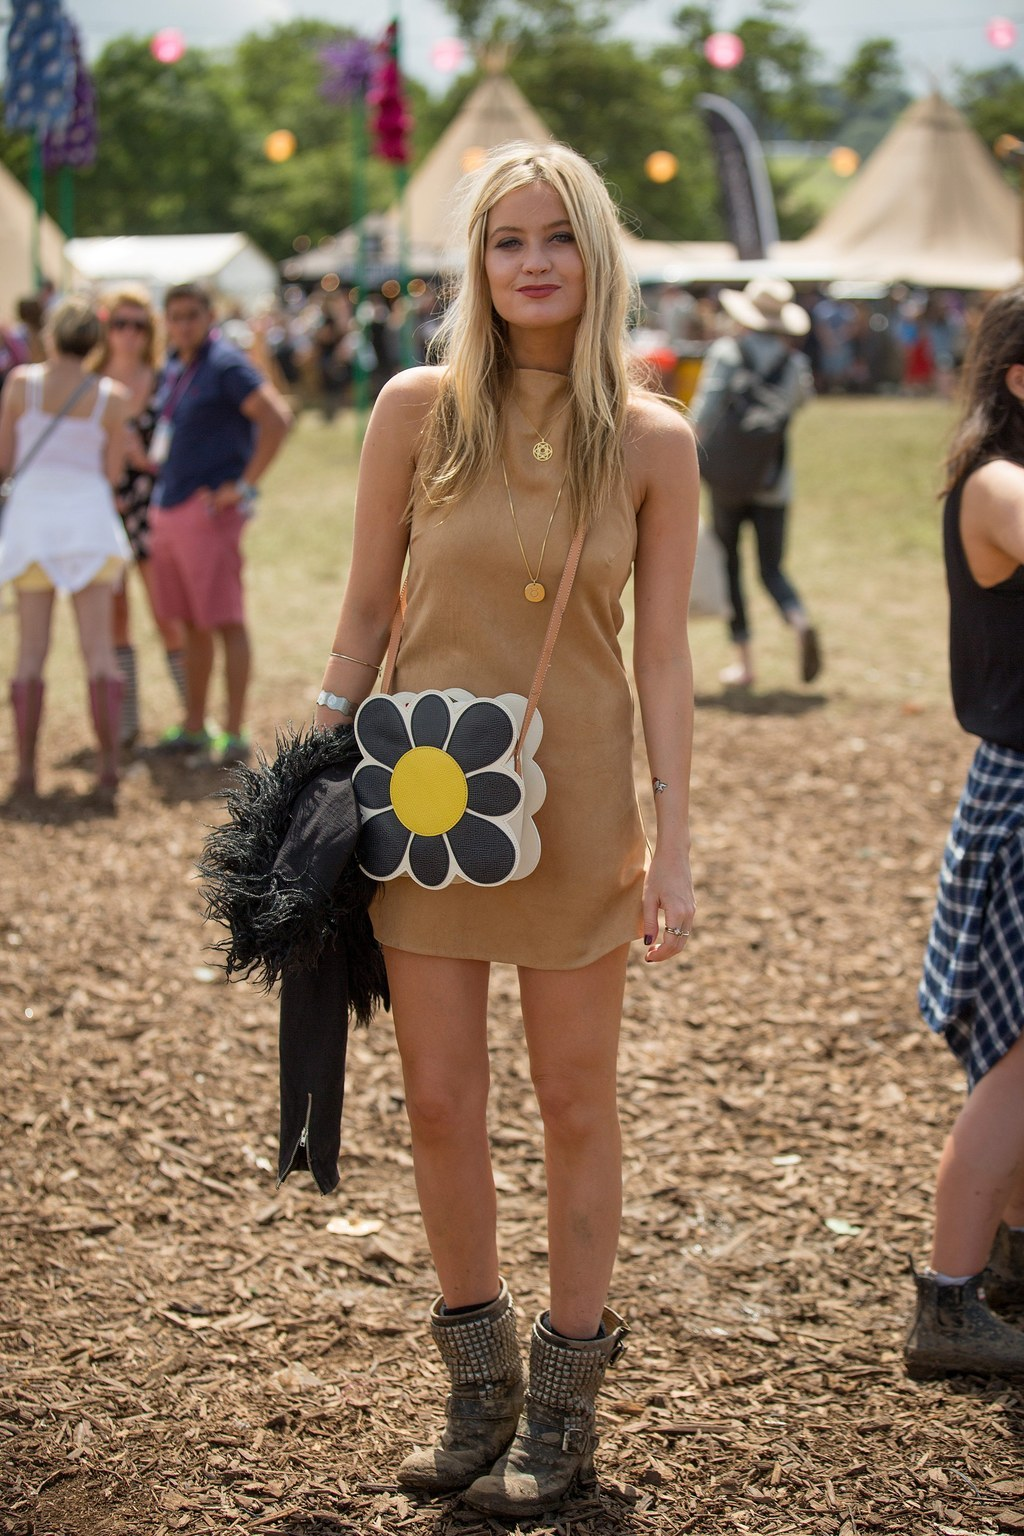 FESTIVAL FASHION: Glastonbury Sunglasses, Outfits, and ...